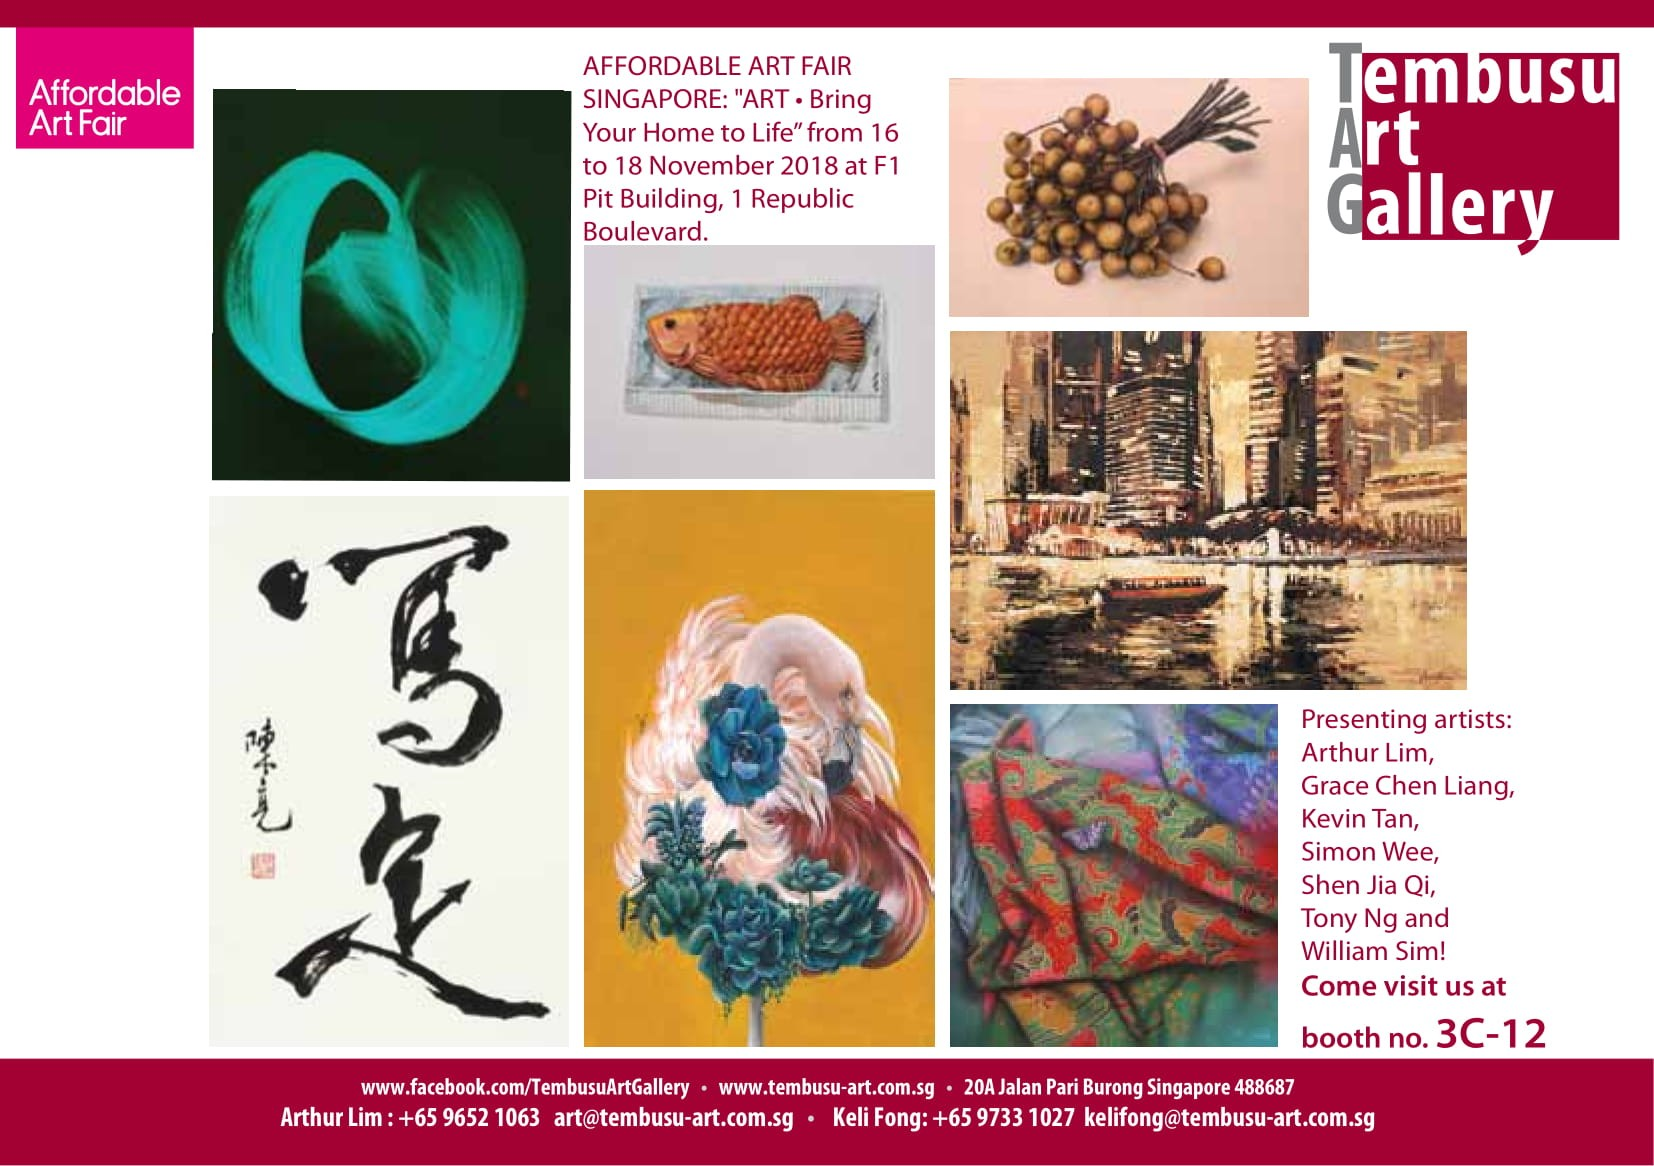 """AFFORDABLE ART FAIR SINGAPORE: """"ART • Bring Your Home to Life"""""""